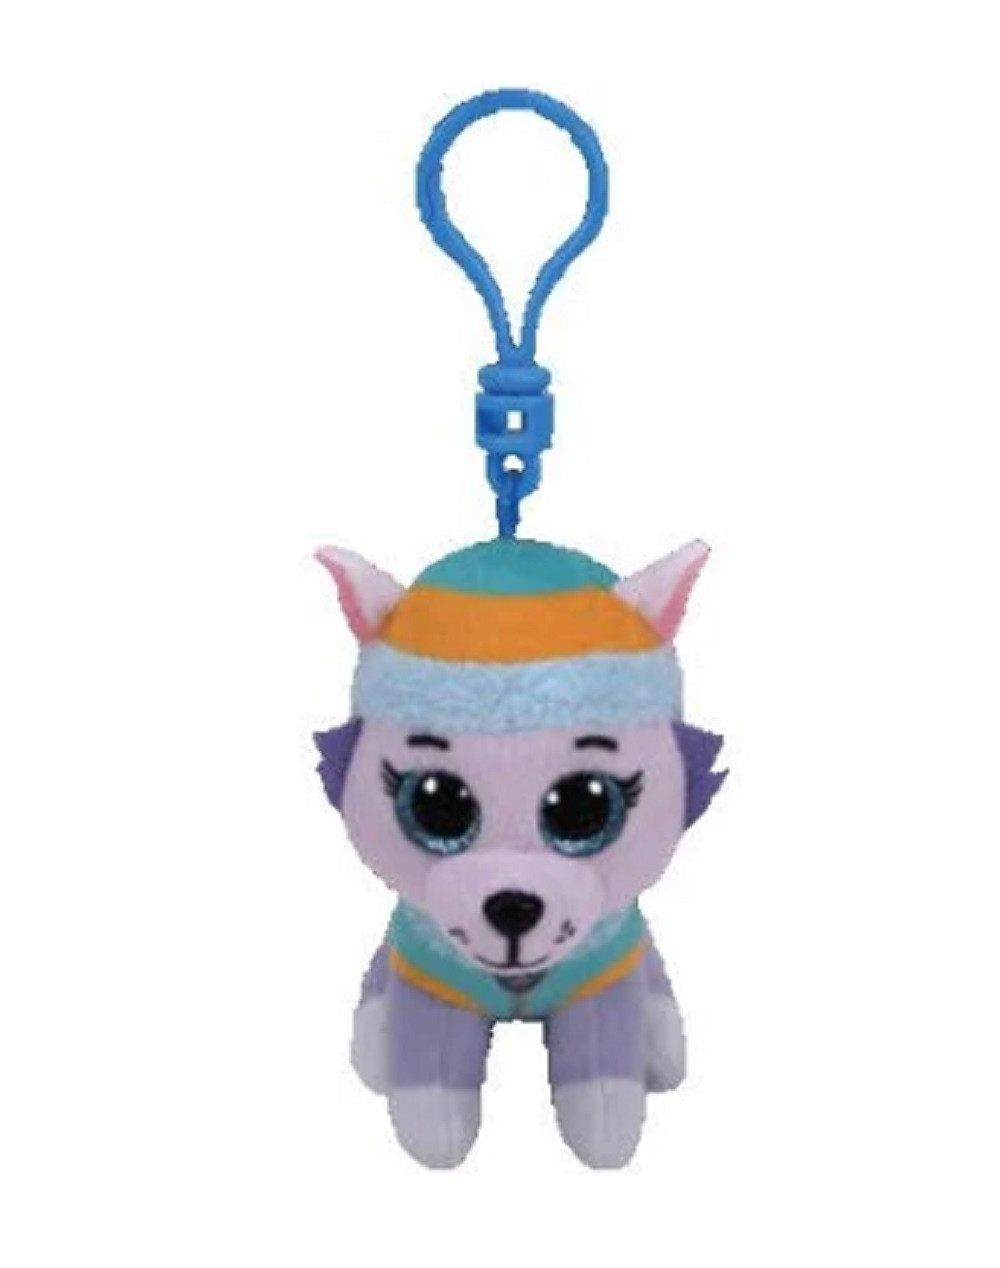 Plush Clip On - Paw Patrol - Everest - 3in - Beanie Boo